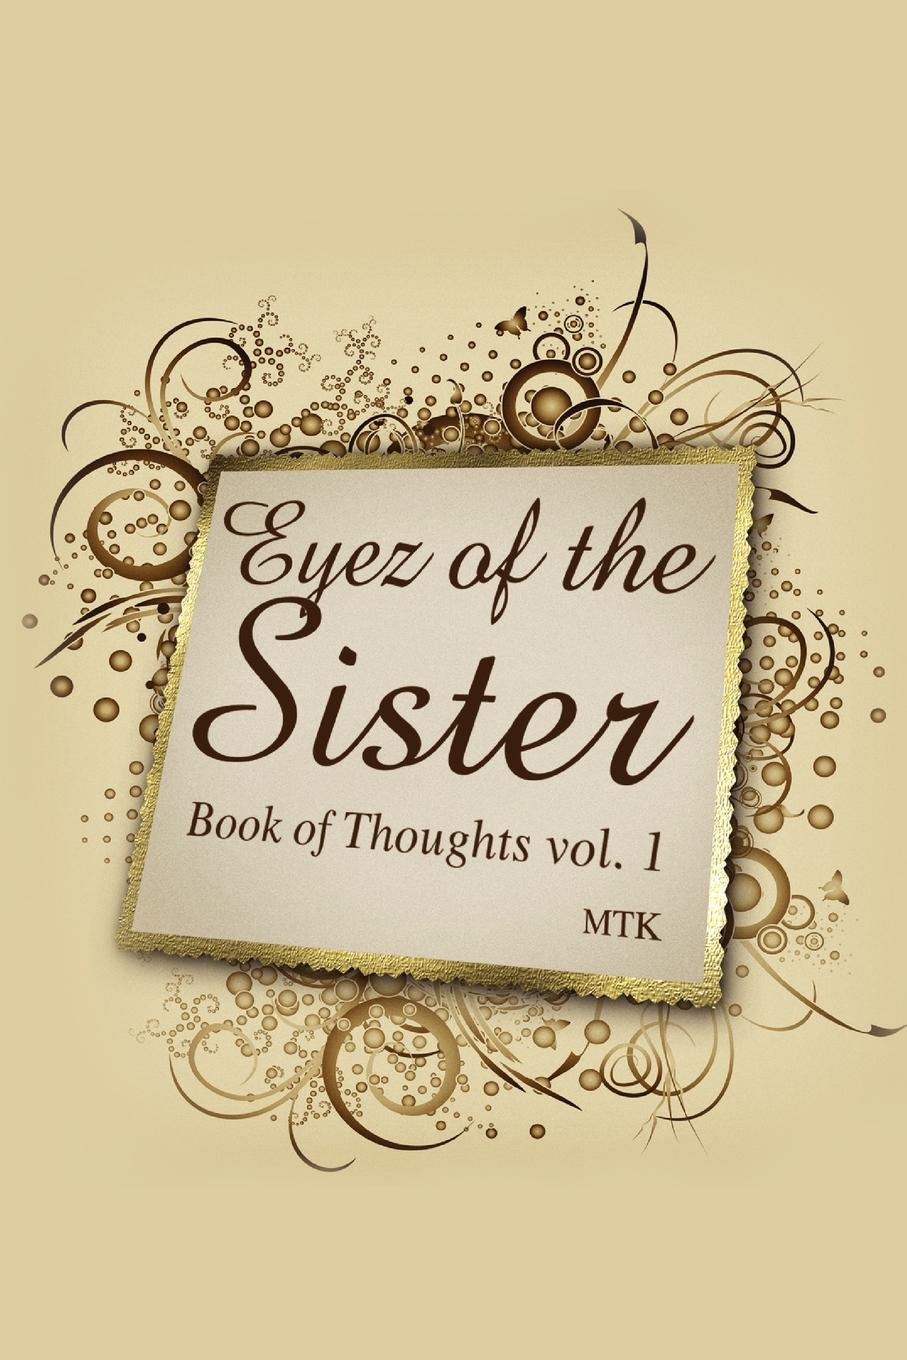 Mtk Eyez of the Sister priest i am through the eyez of the warriorz of light